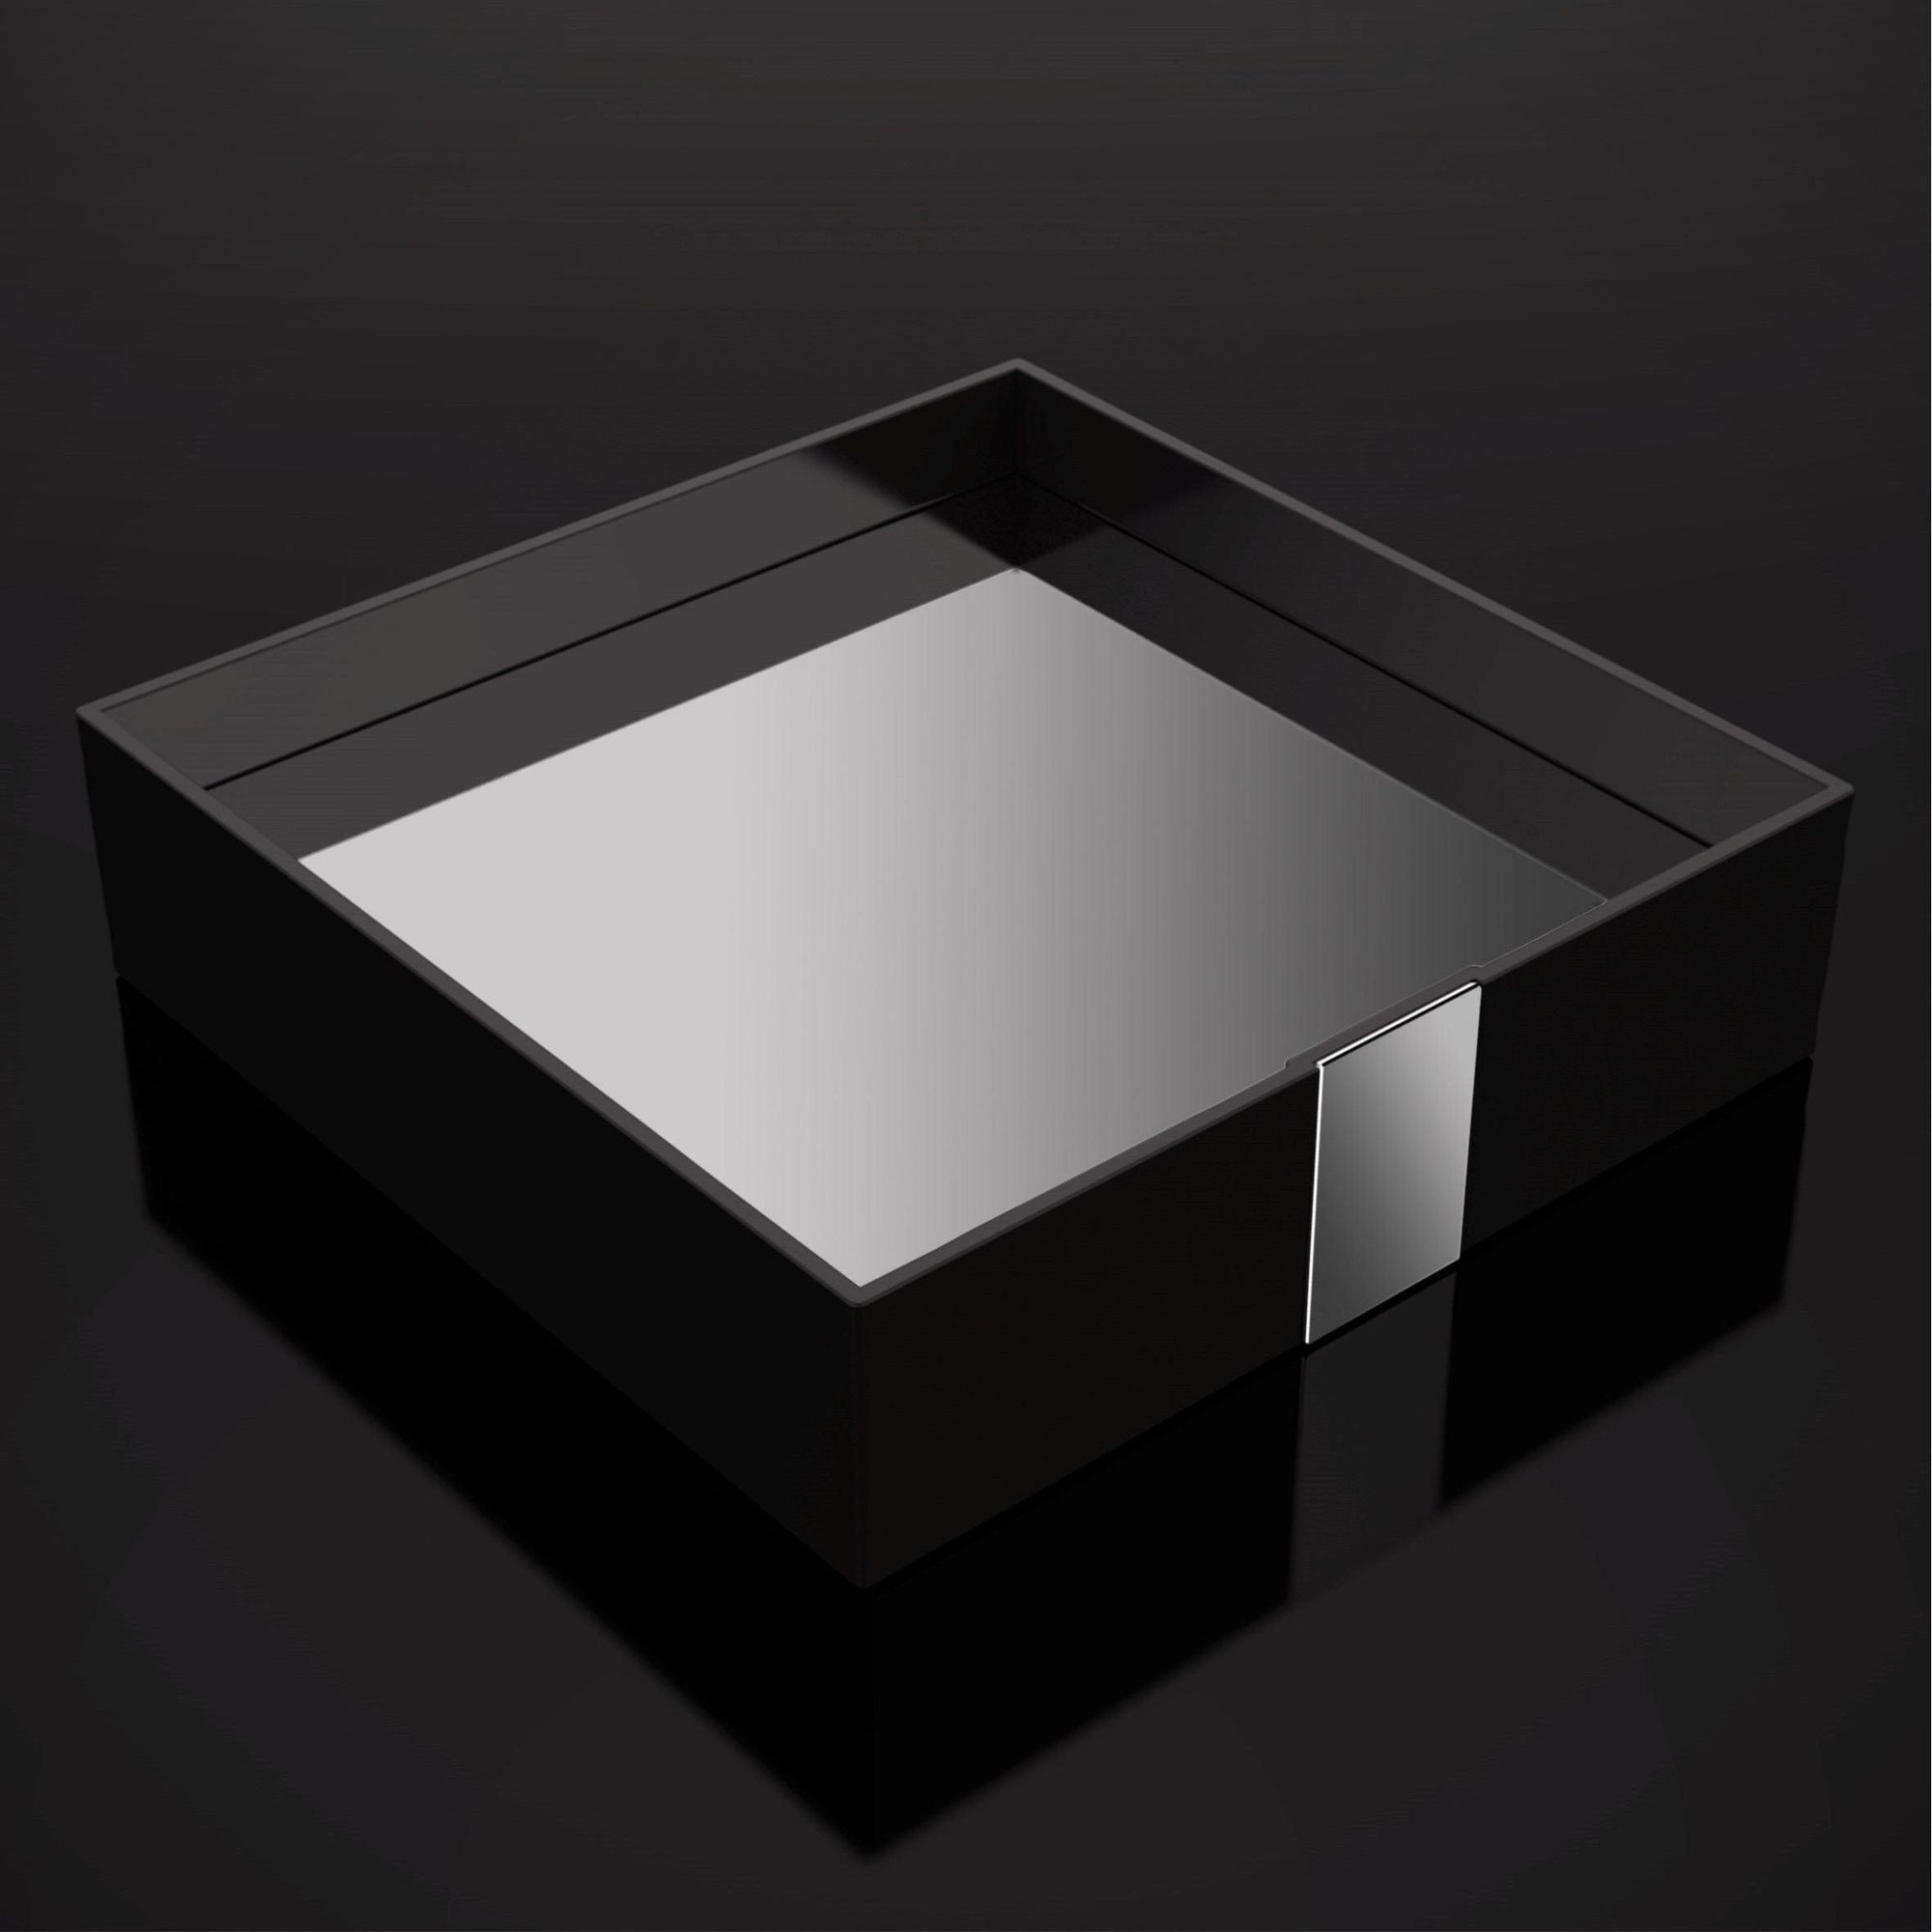 Zen Design - BA0297.202 - One Square Tray - One - Black